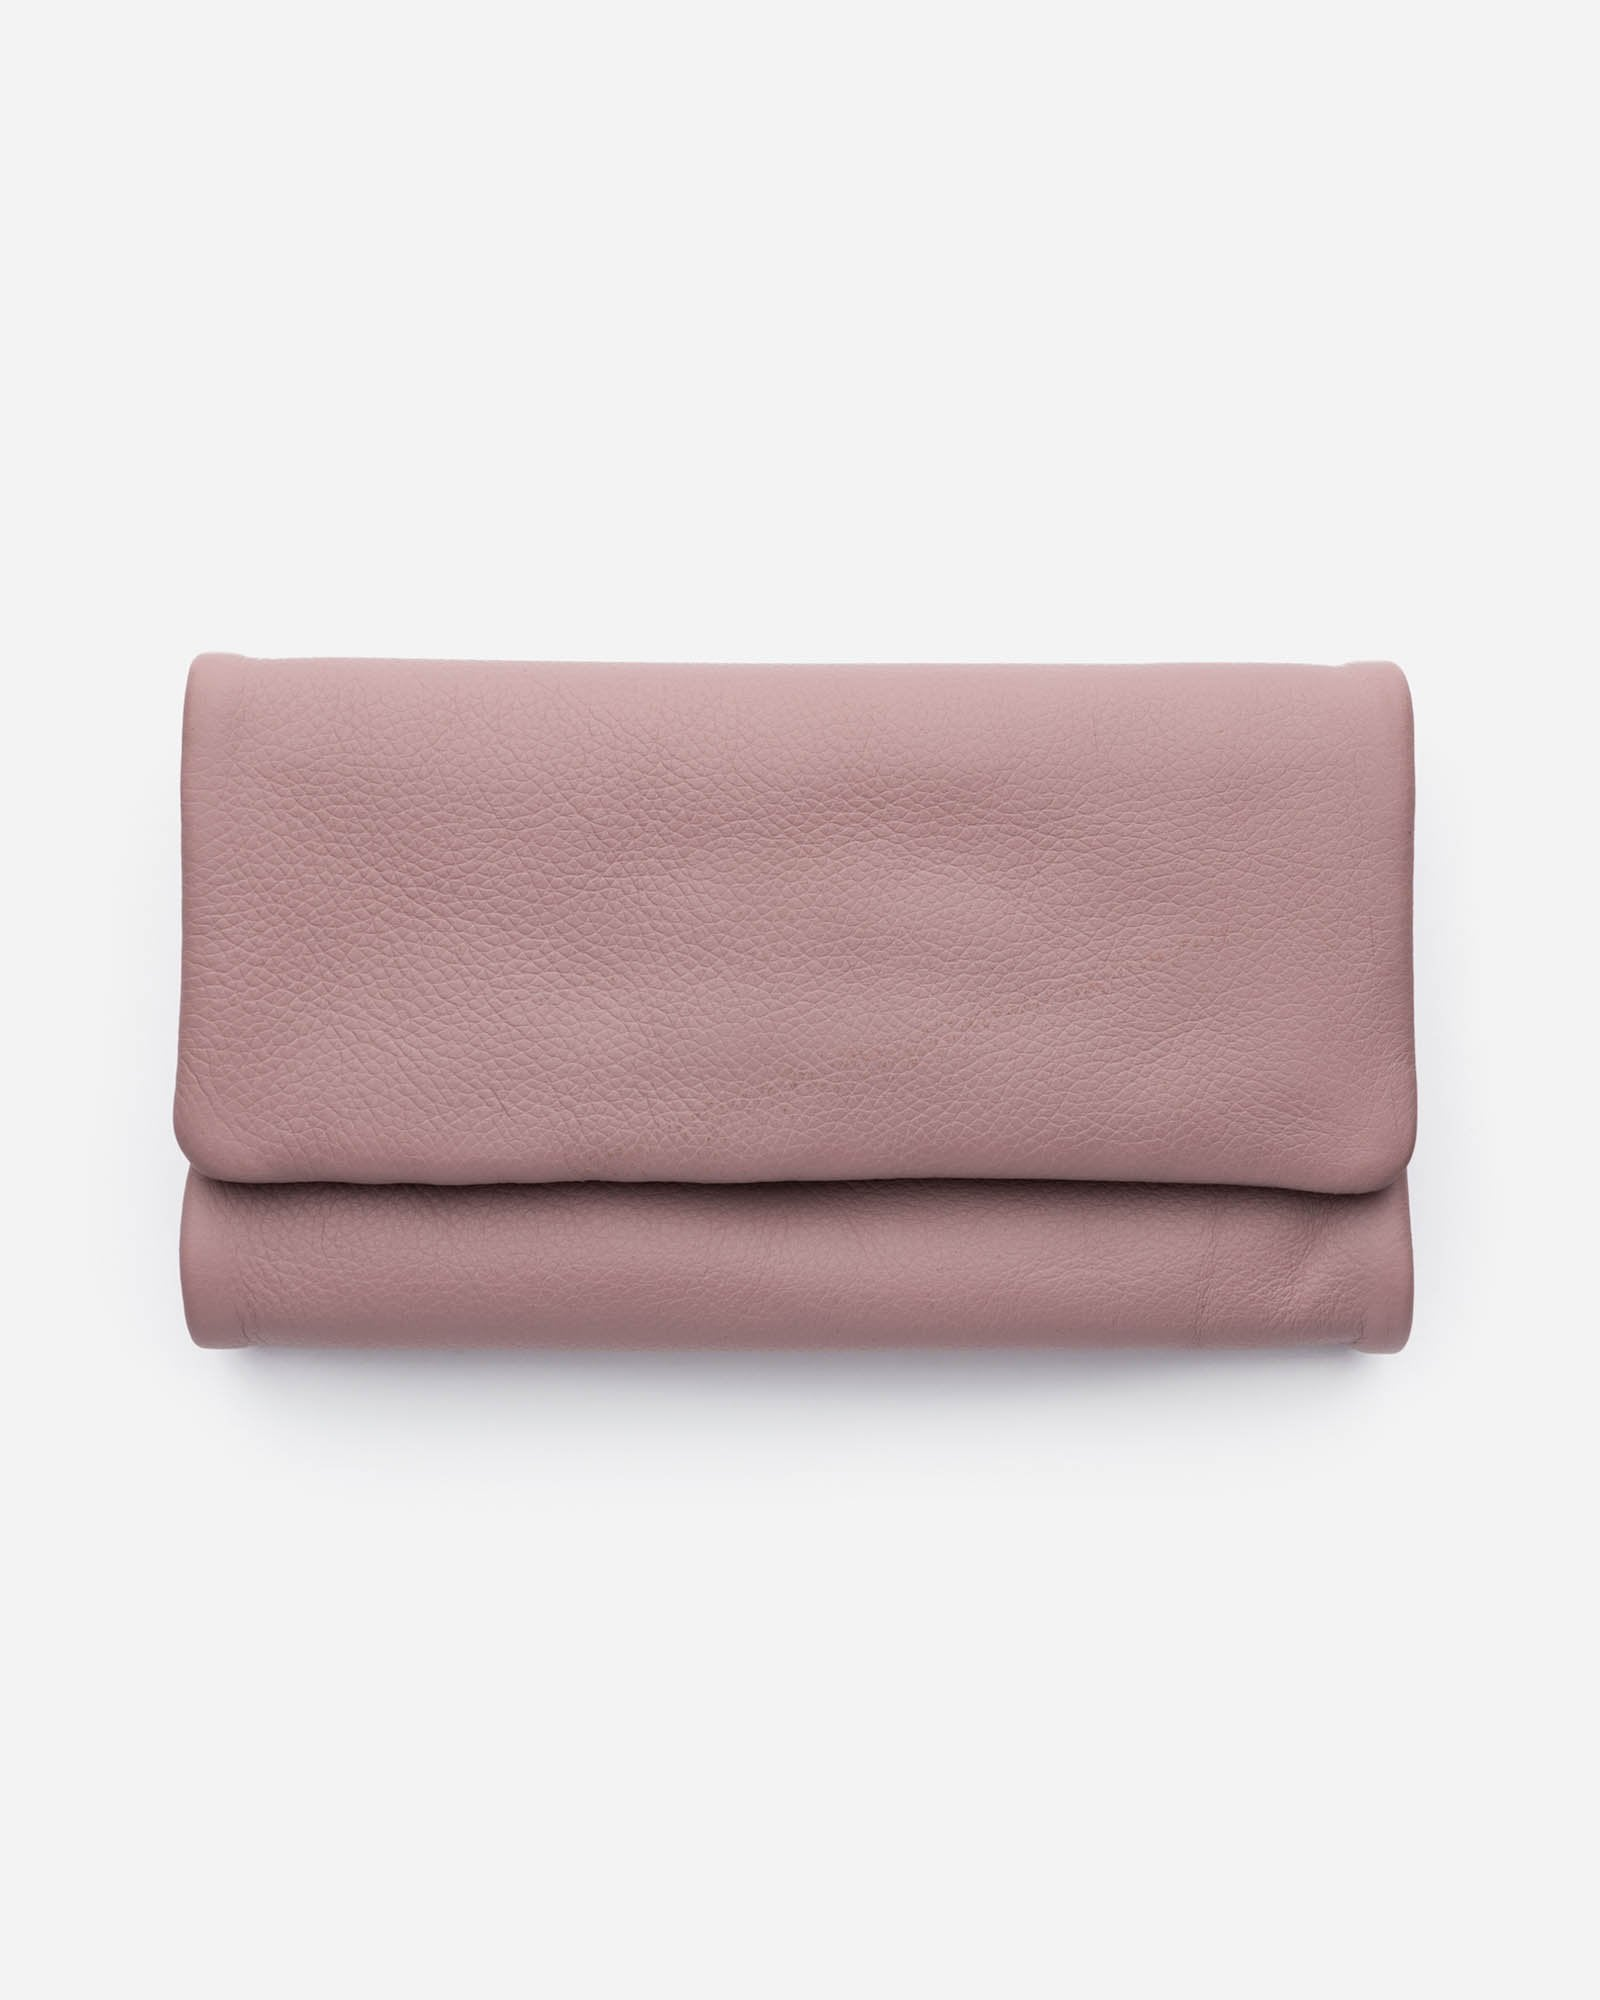 Paiget Wallet | Dusty Rose